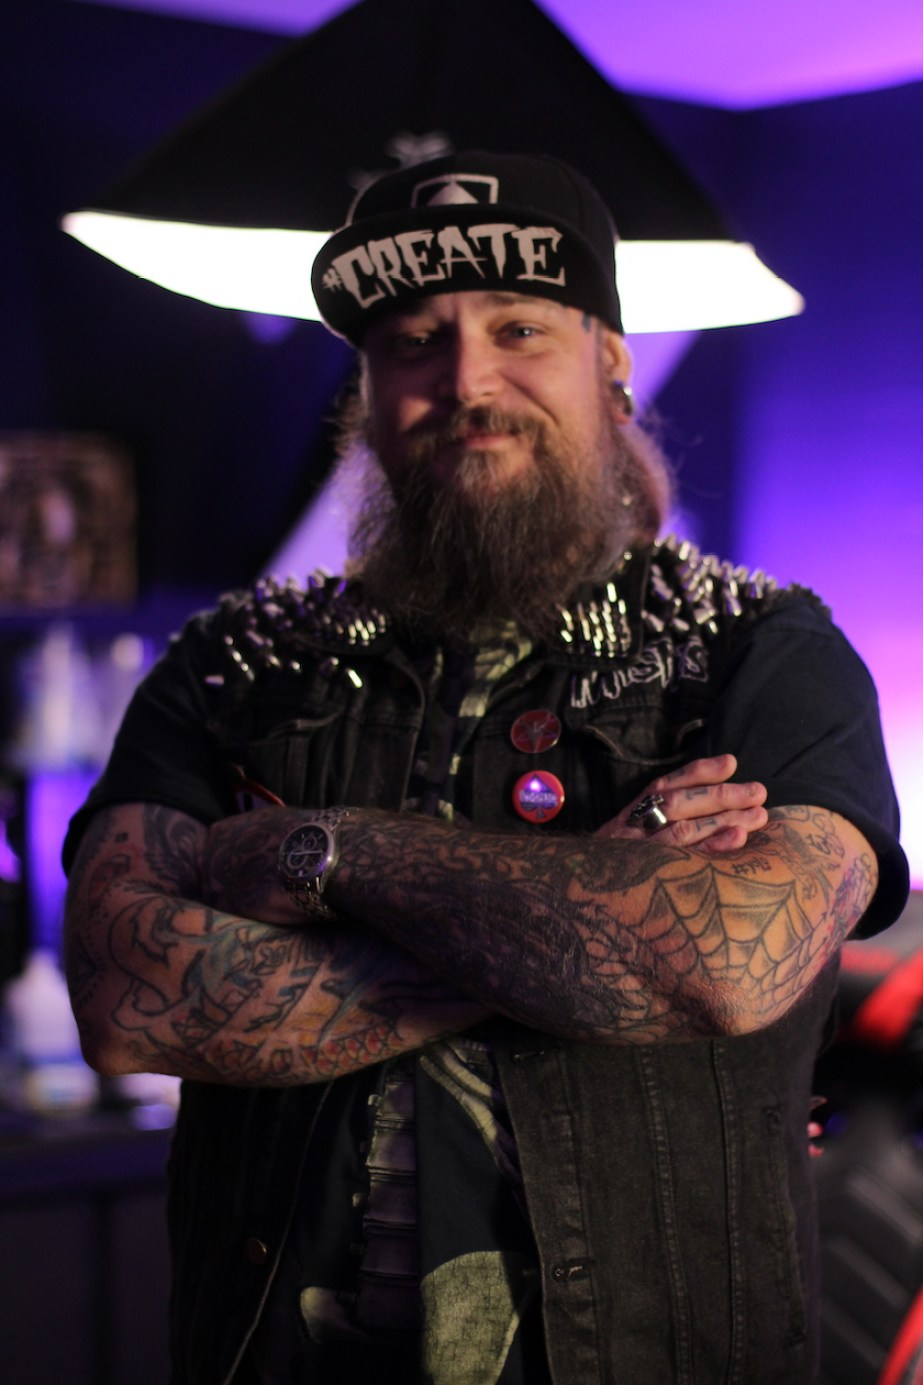 A tattooed man with a beard and hat looking at the camera with his arms crossed.